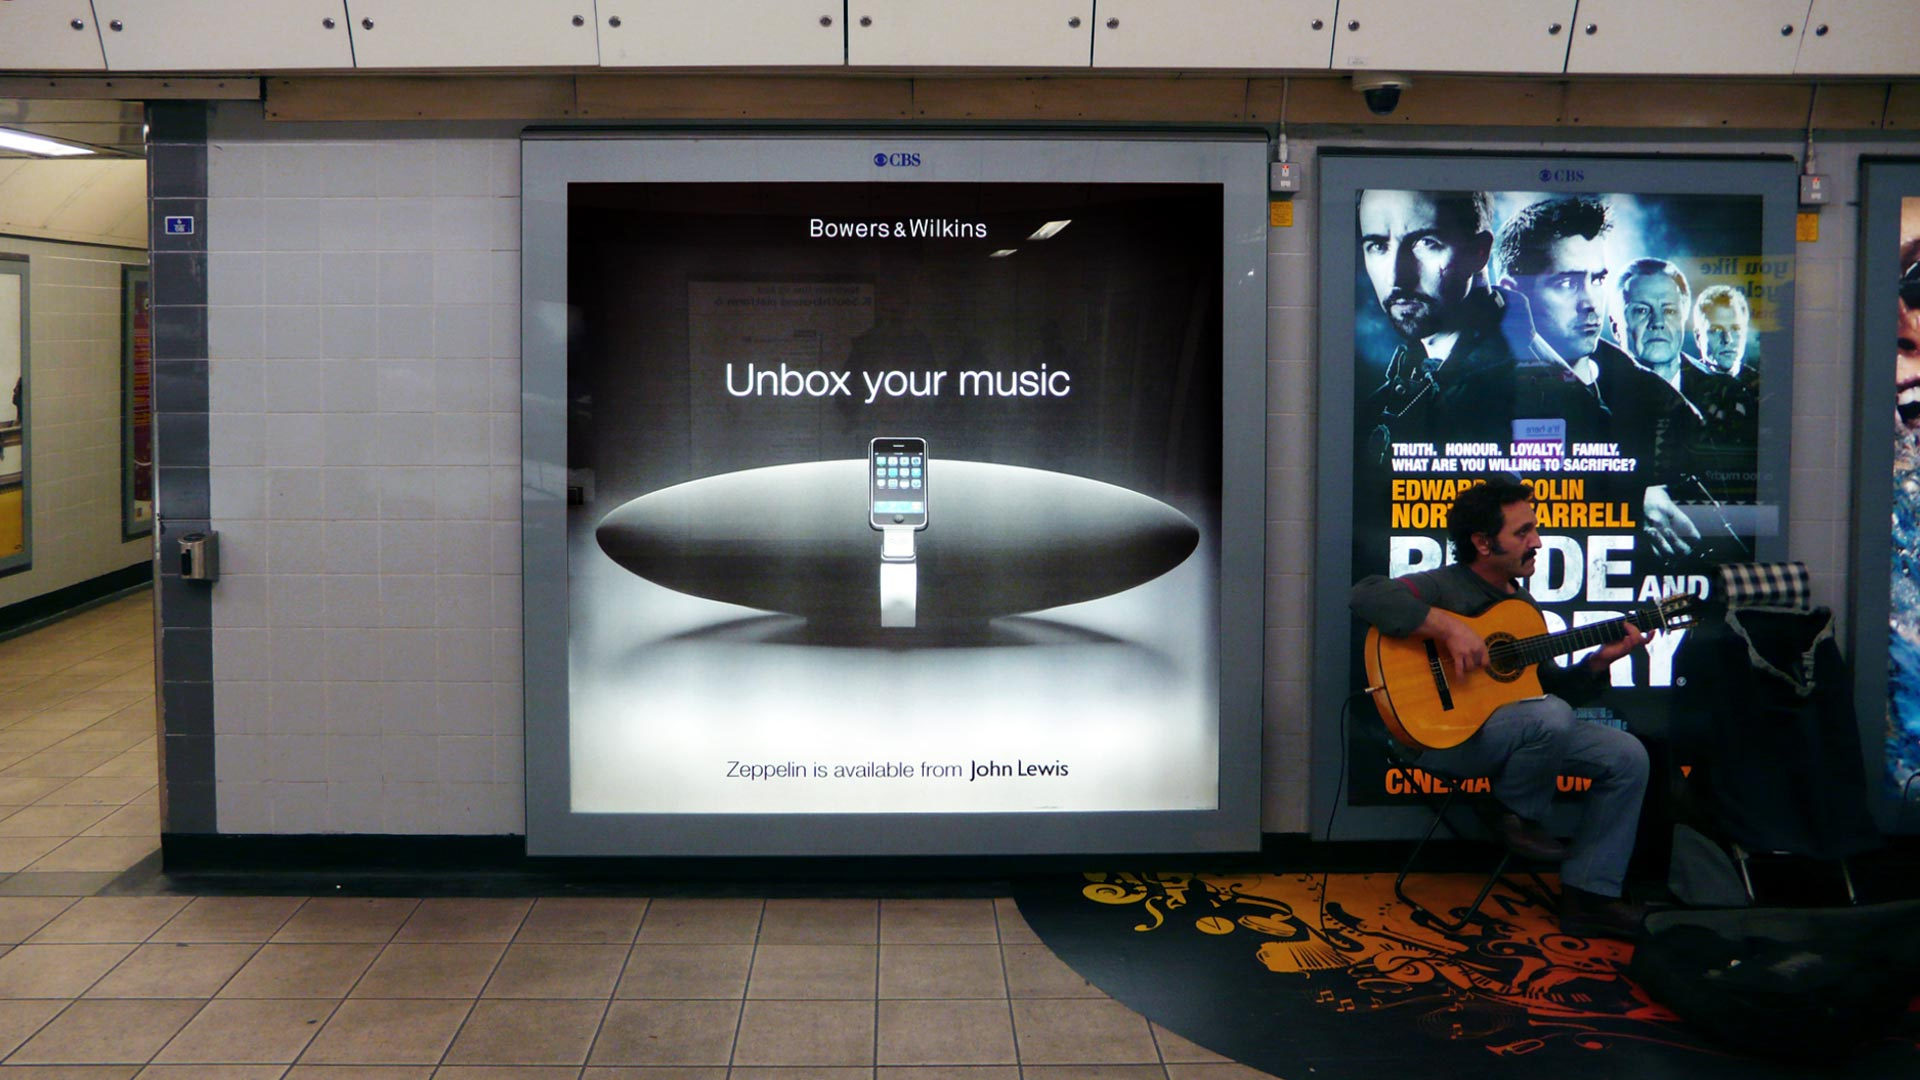 Bowers Amp Wilkins Zeppelin Campaign Thomas Manss Amp Company